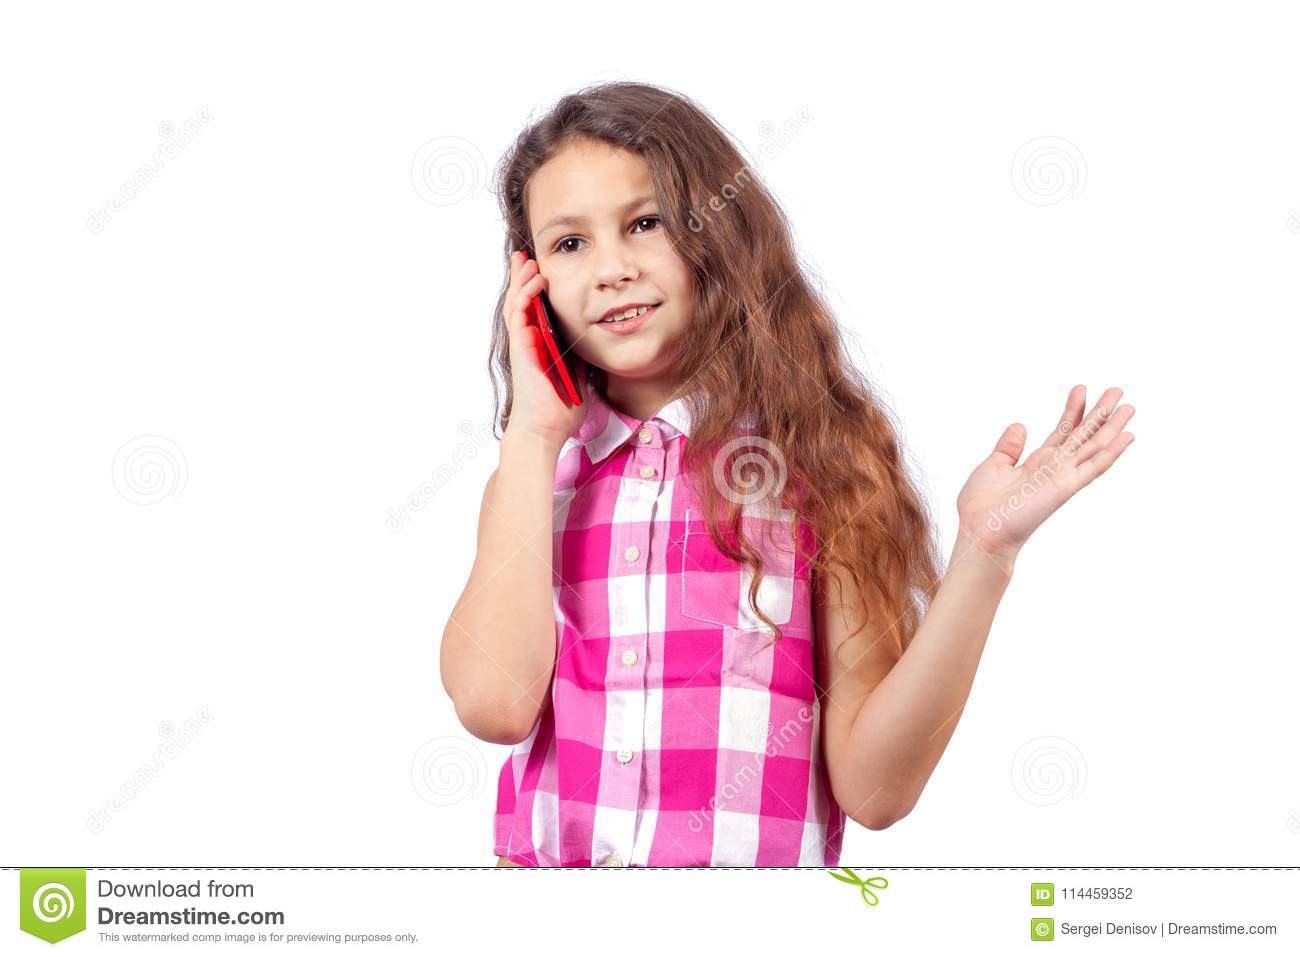 What to talk about with a girl on the phone